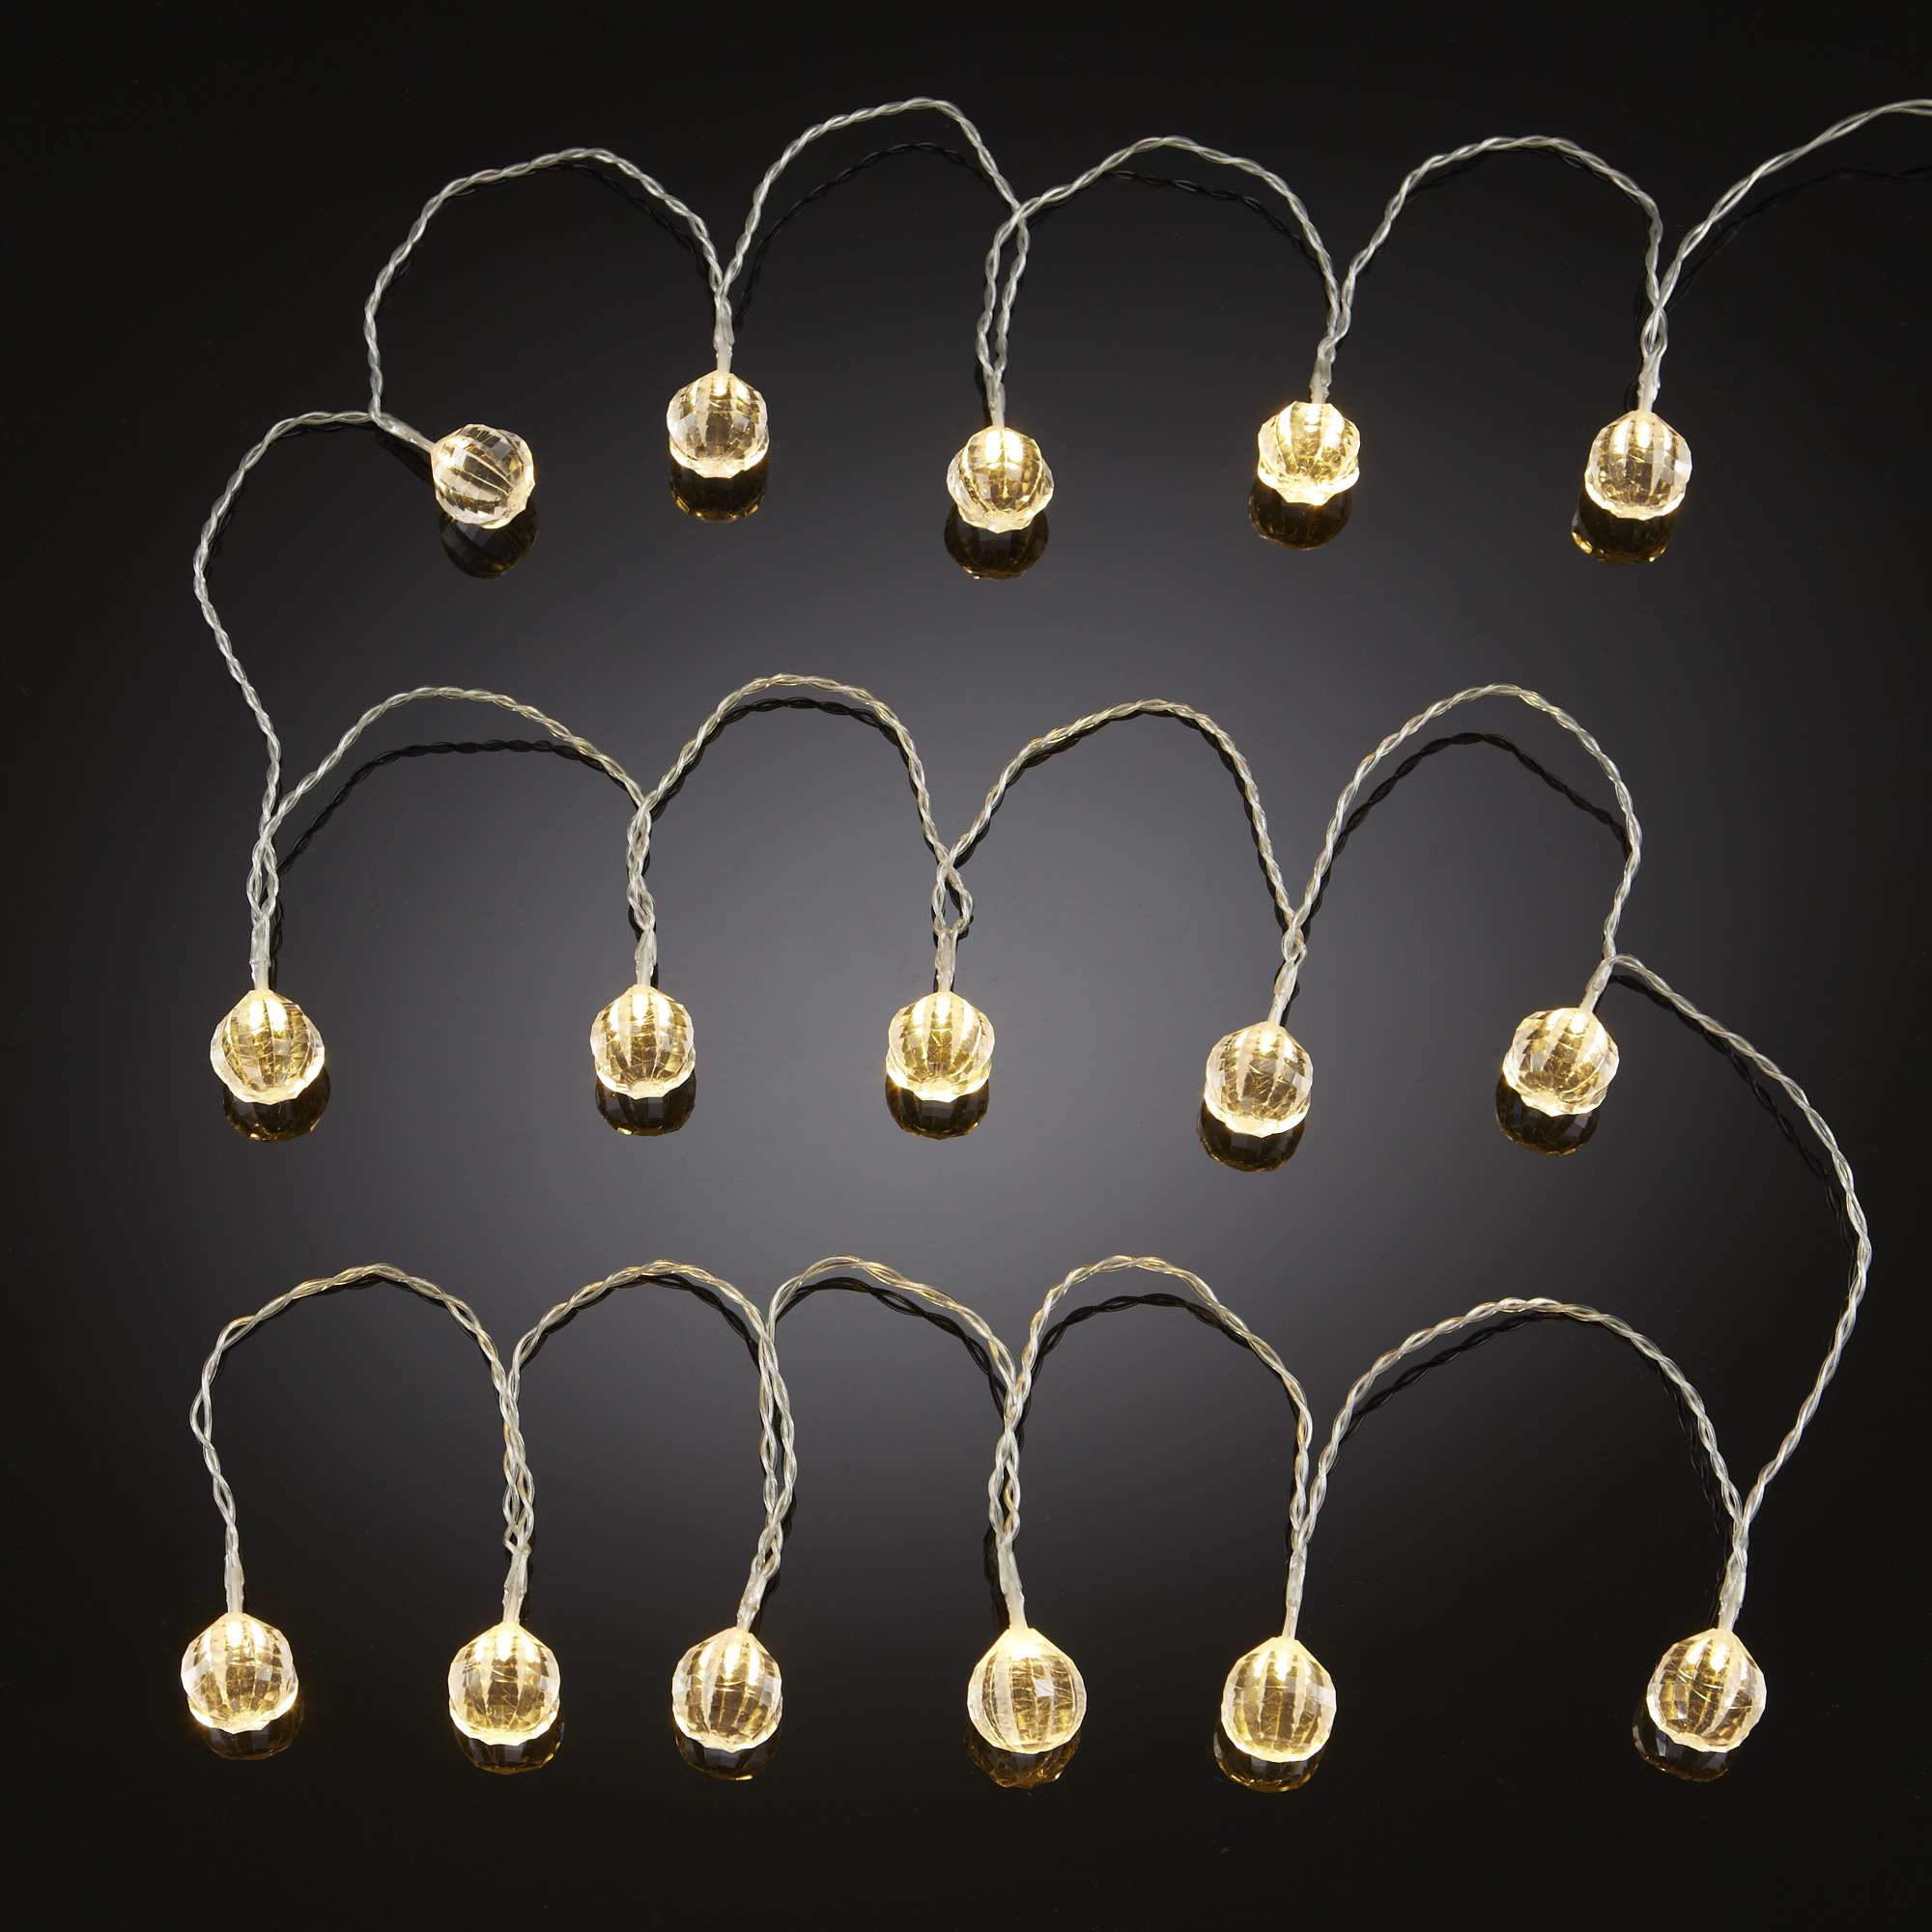 String Lights Sainsburys : Clear Gem String Lights 16 Lights Adds A Touch Of Glamour To Any Home eBay